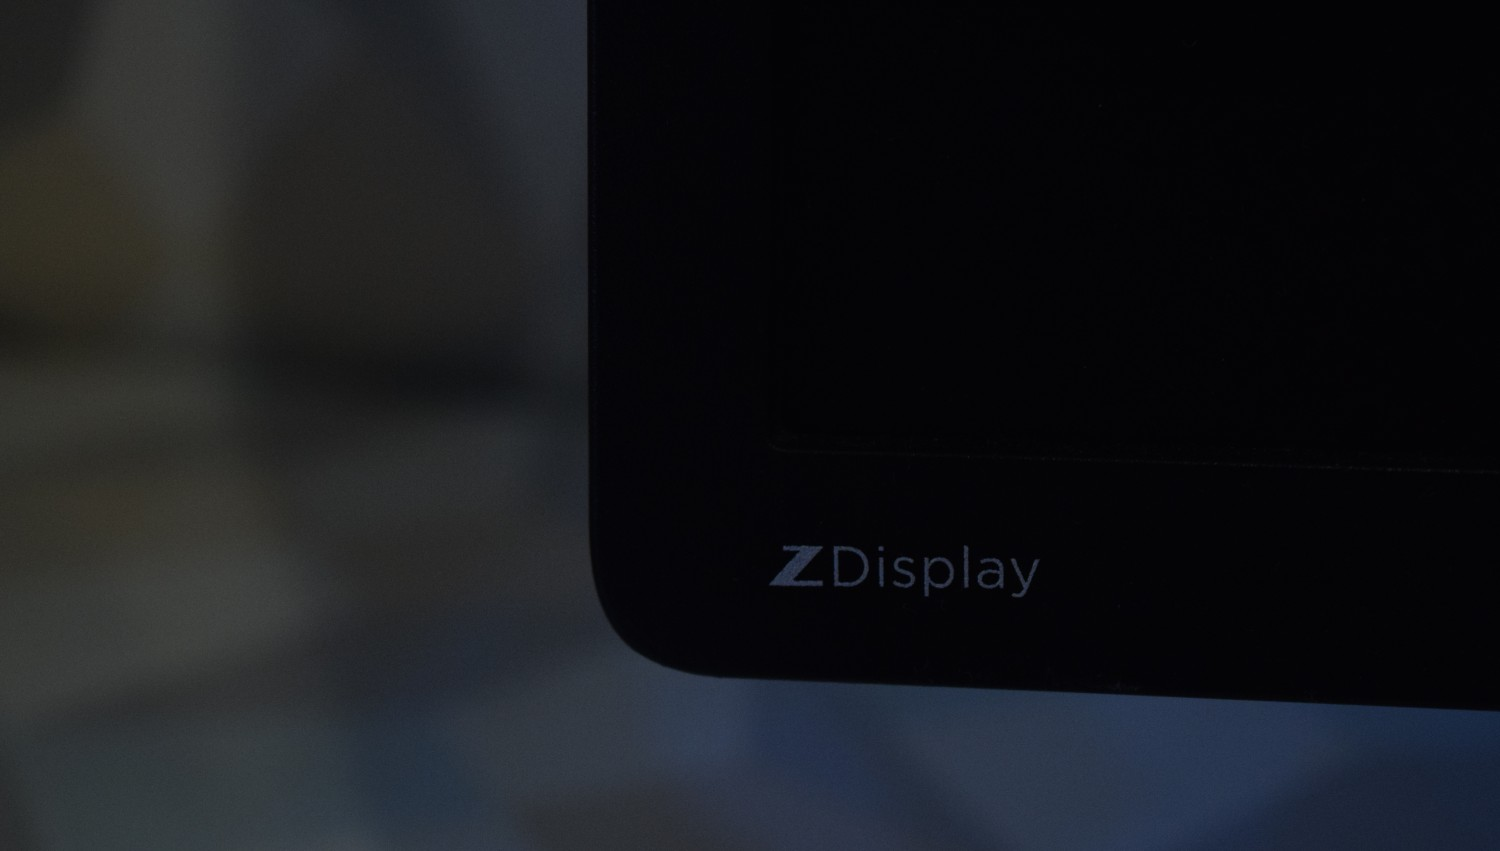 HP Z Display Z22i - pohľad na logo Z Display